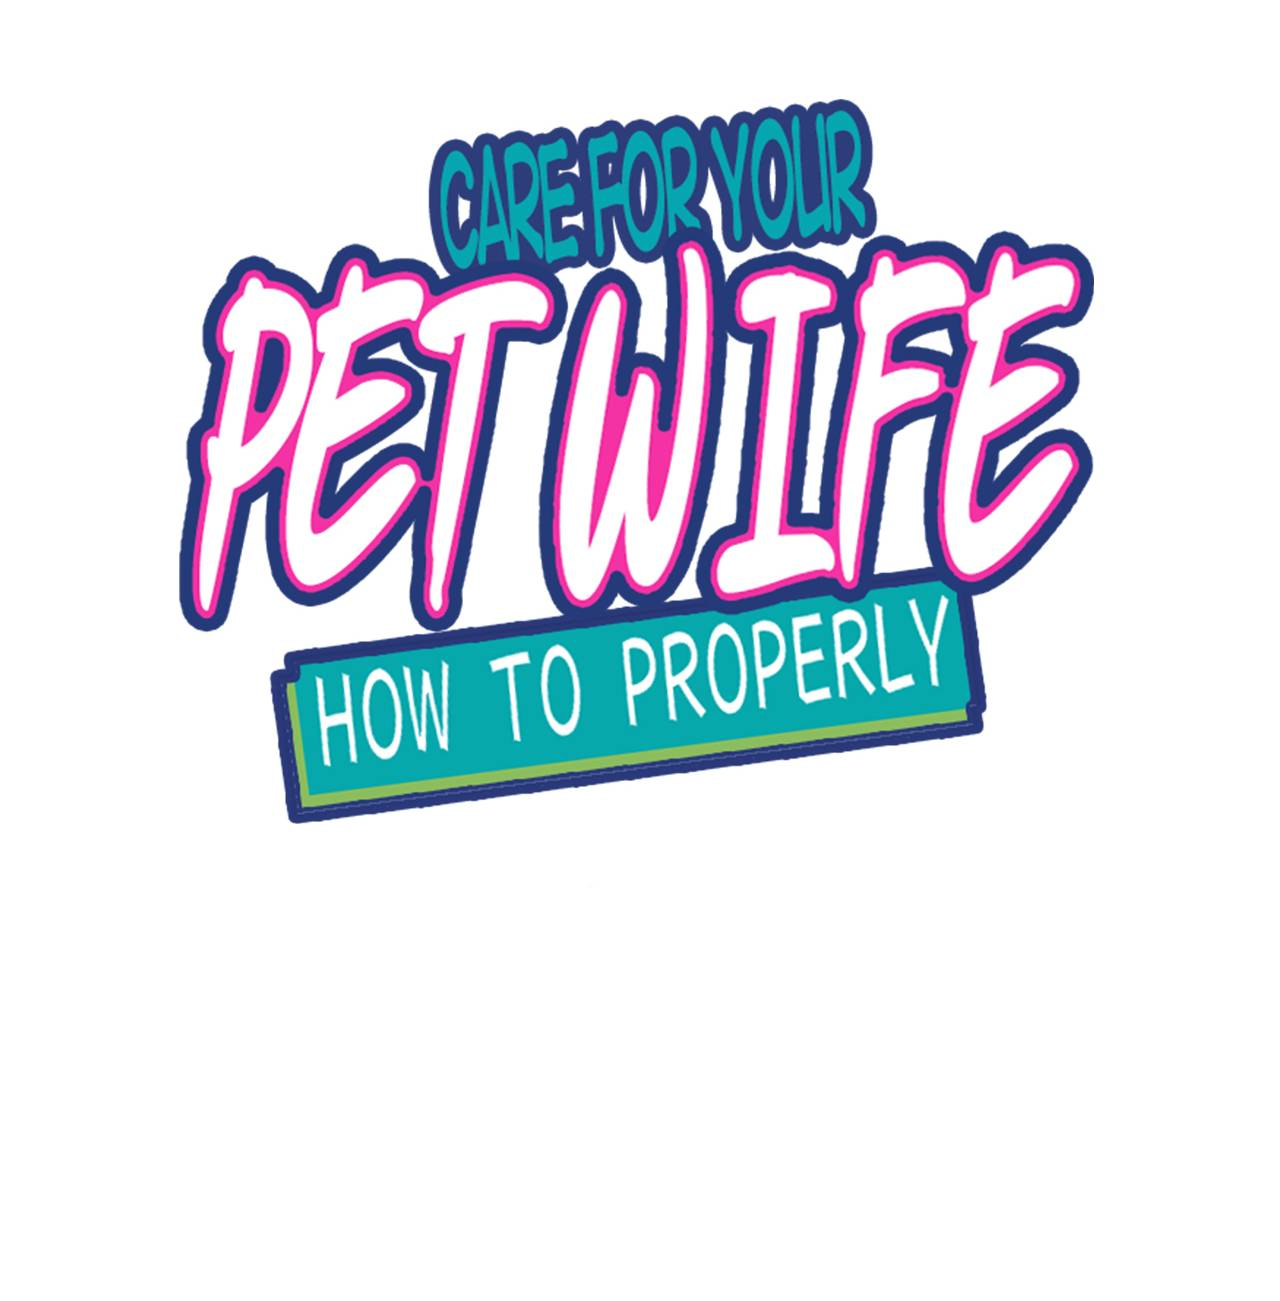 How To Properly Care For Your Pet Wife - chapter 42 - #1